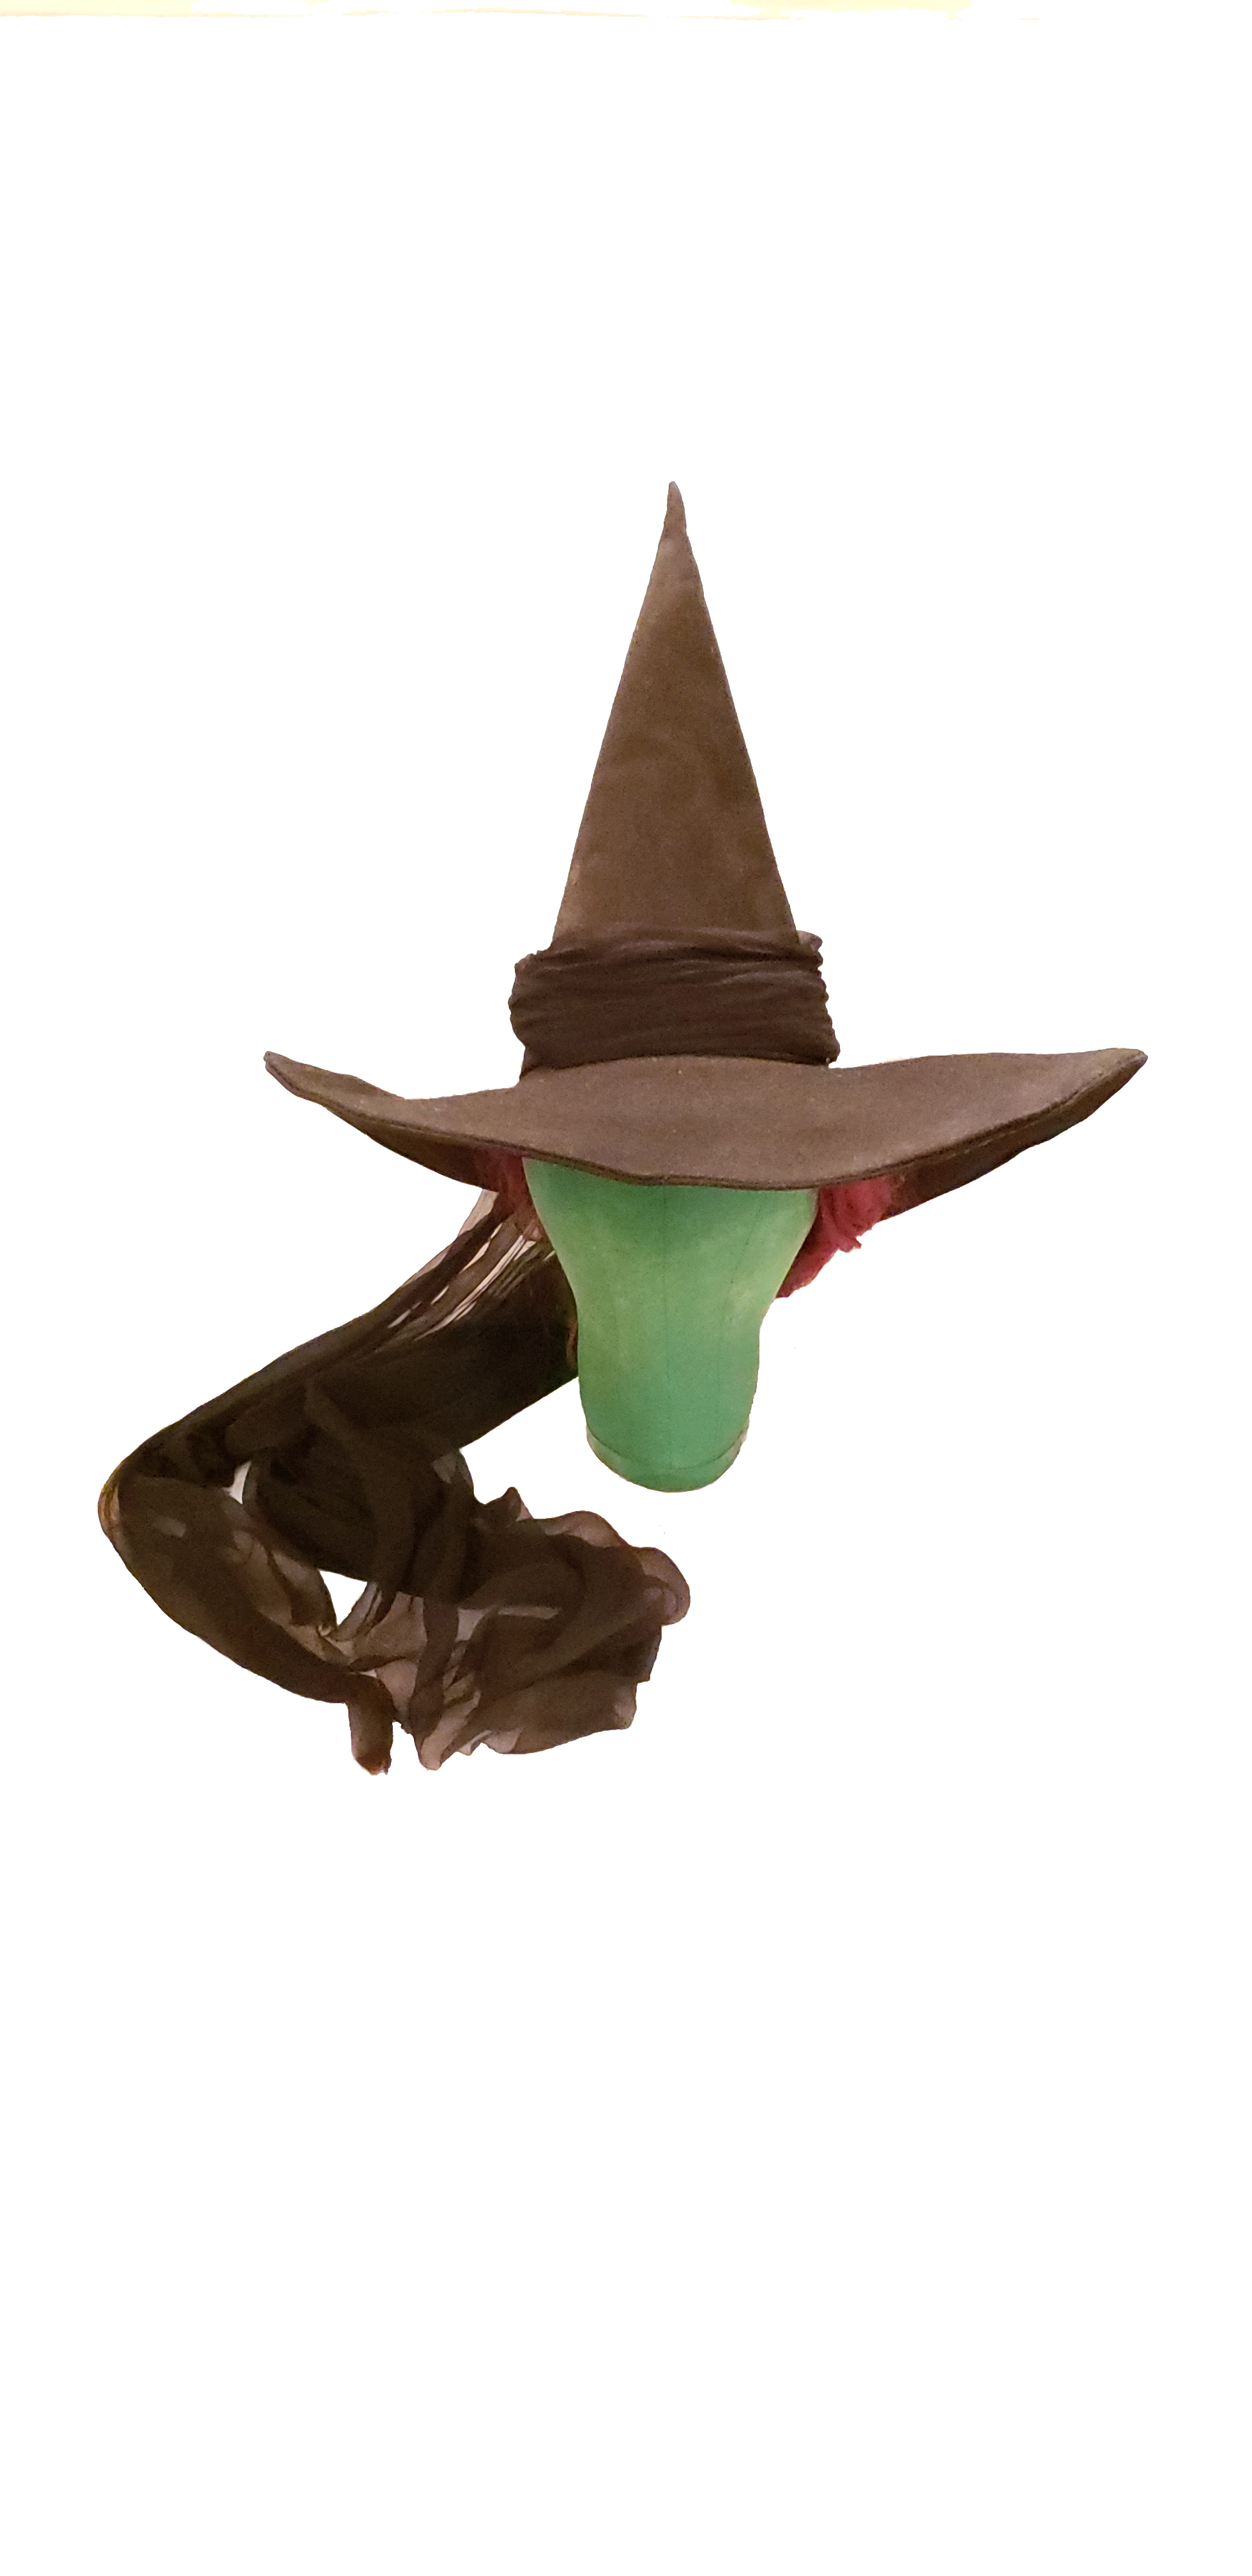 https://www.motionpictureartifacts.com/wp-content/uploads/2018/08/Witchs-Hat-Front.jpg